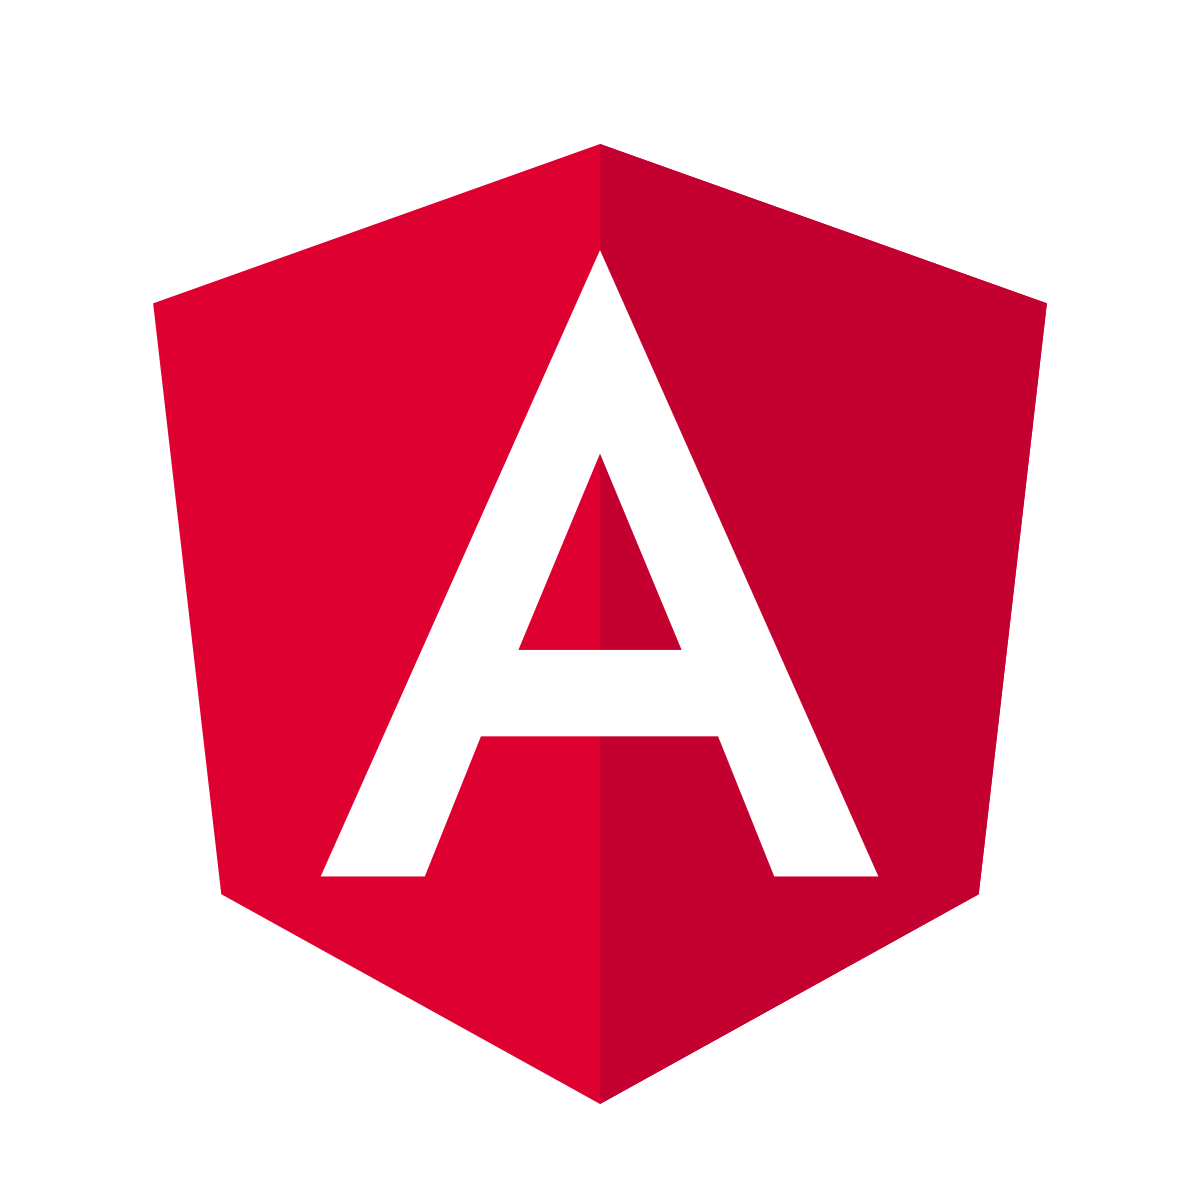 https://gate3.co/wp-content/uploads/2018/08/angular.png